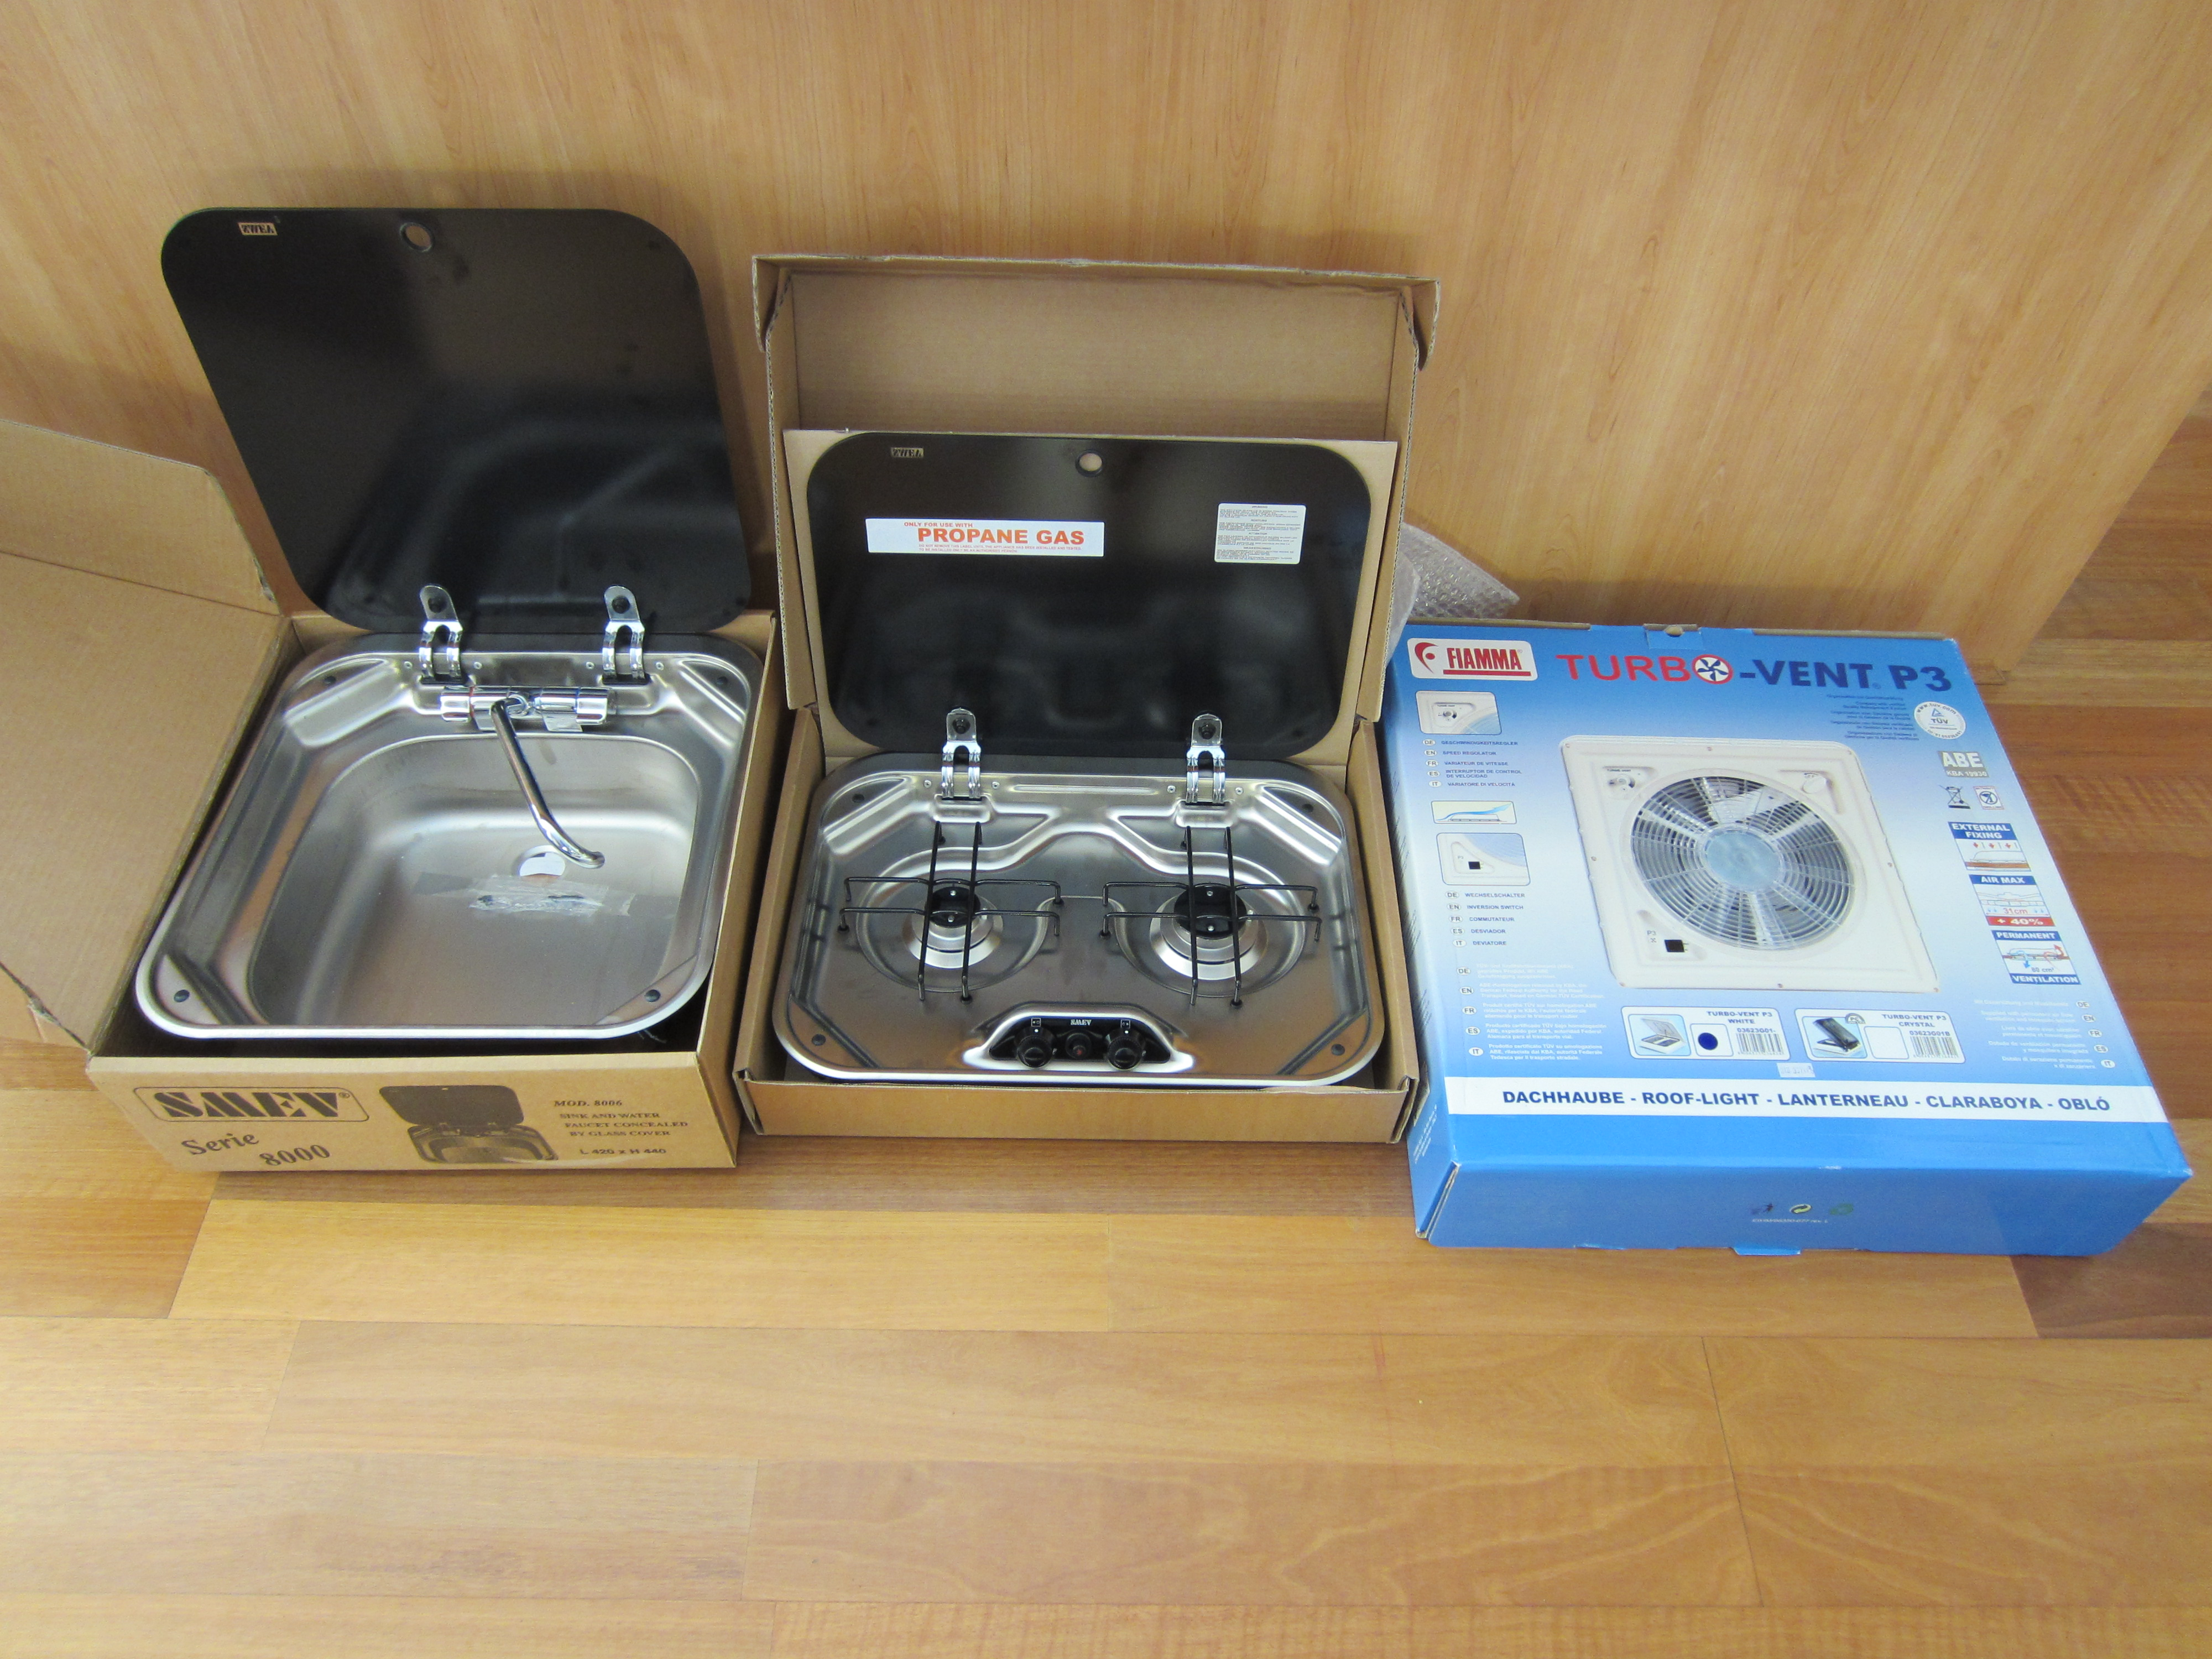 Superb ... Kitchen Sink: Caravans Plus Has Been A Very Useful Supplier, We Also  Bought The Thetford Toilet And Gas Bottle Casing There. And Although  Theyu0027re Based ...